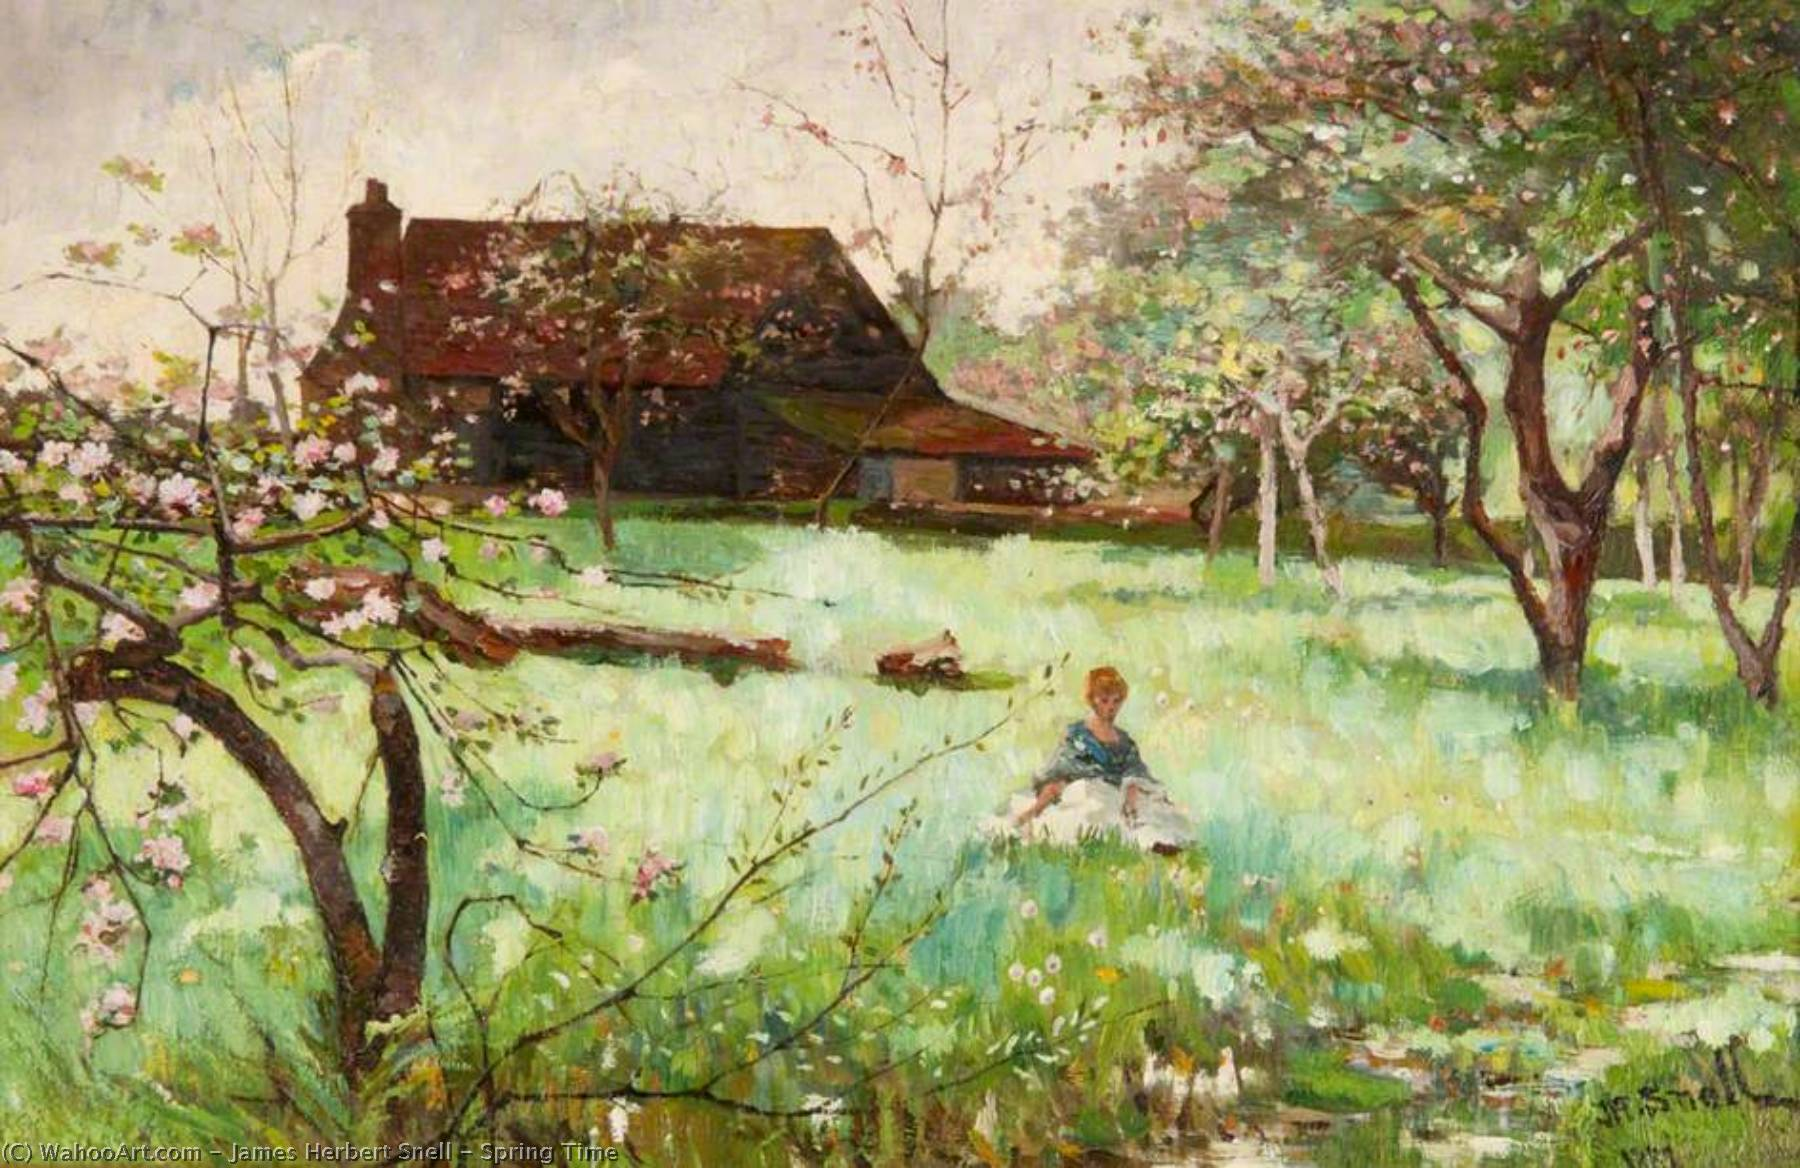 Spring Time, Oil On Canvas by James Herbert Snell